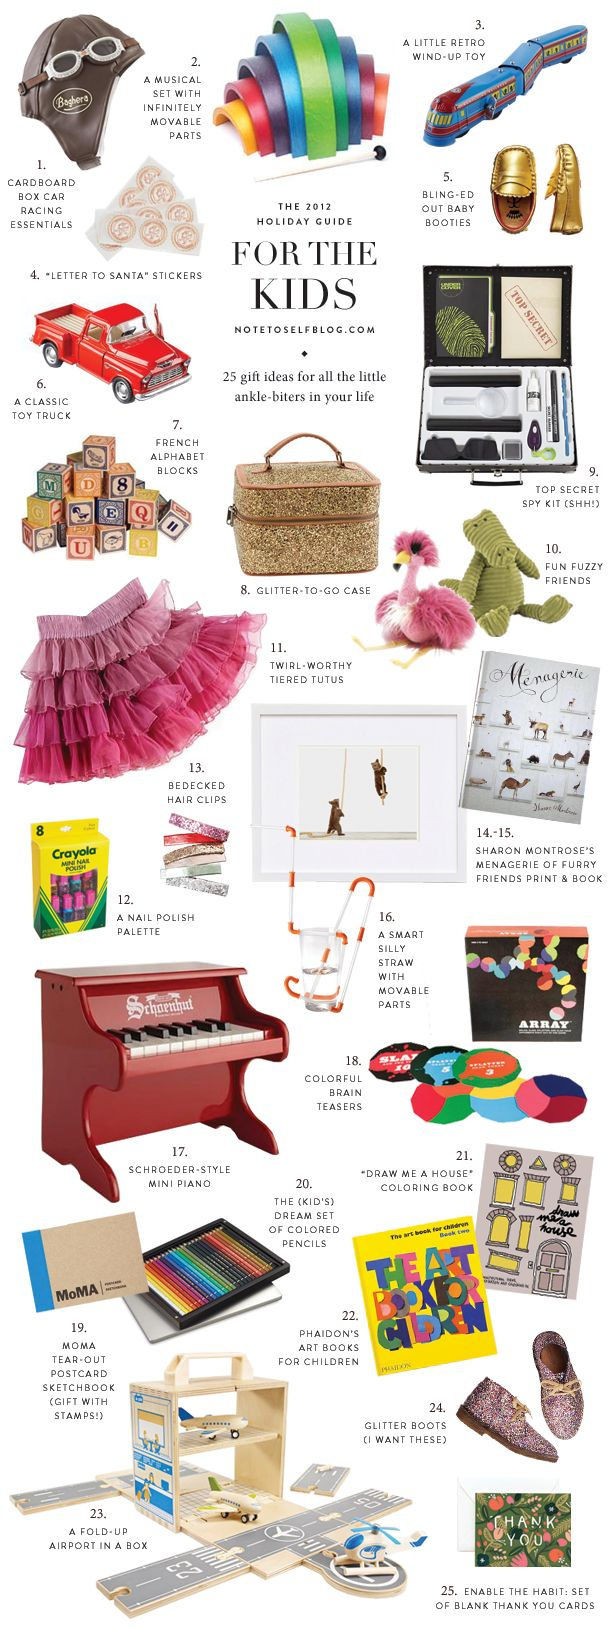 Holiday Guide: 25 Gift Ideas for Kids (via notetoselfblog.com).